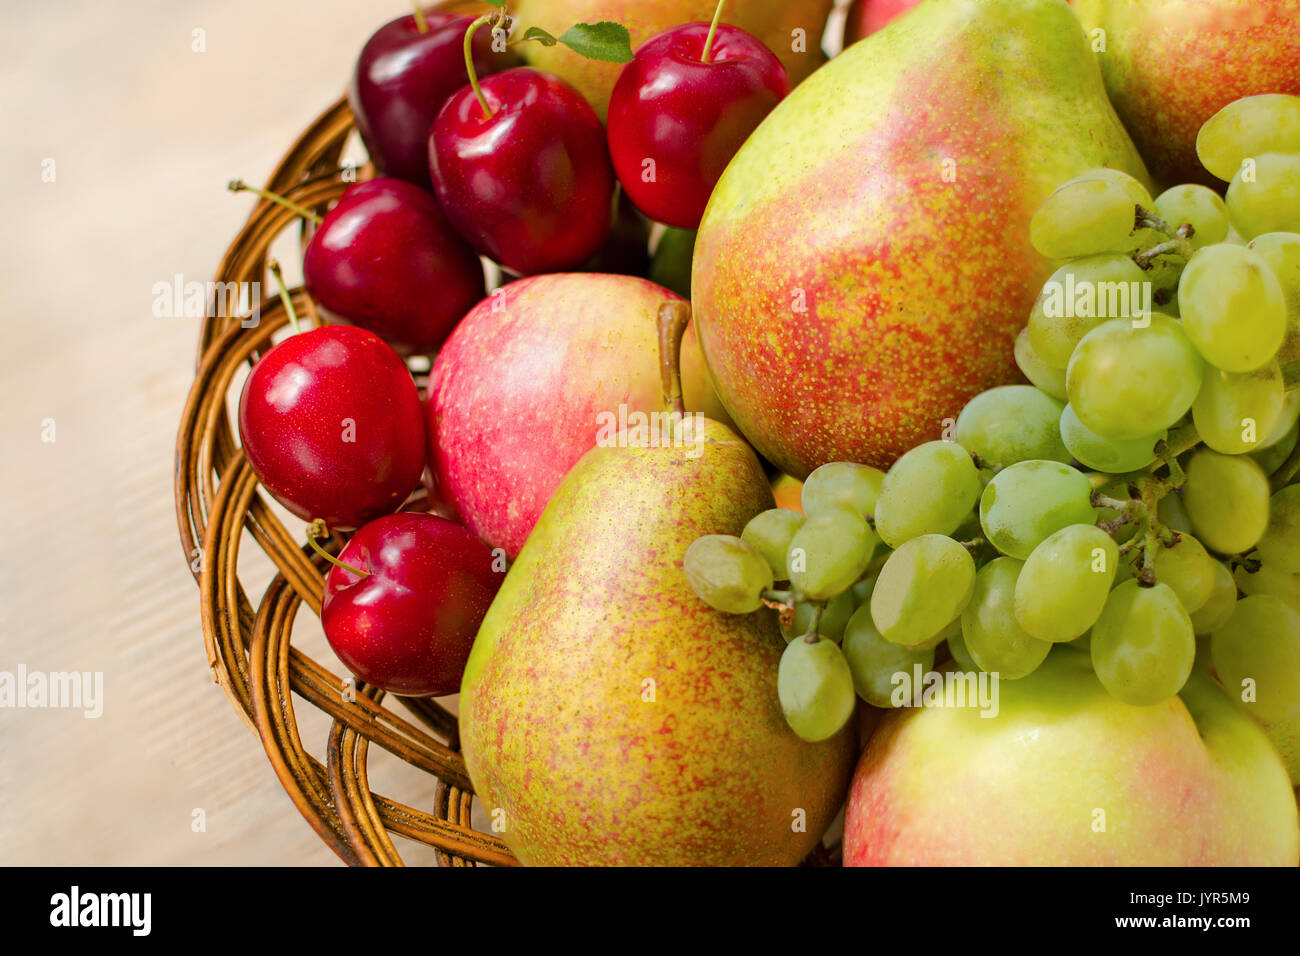 Fruit harvest. Organic fresh apples, pears, grapes and plums in a woven wooden plate Stock Photo